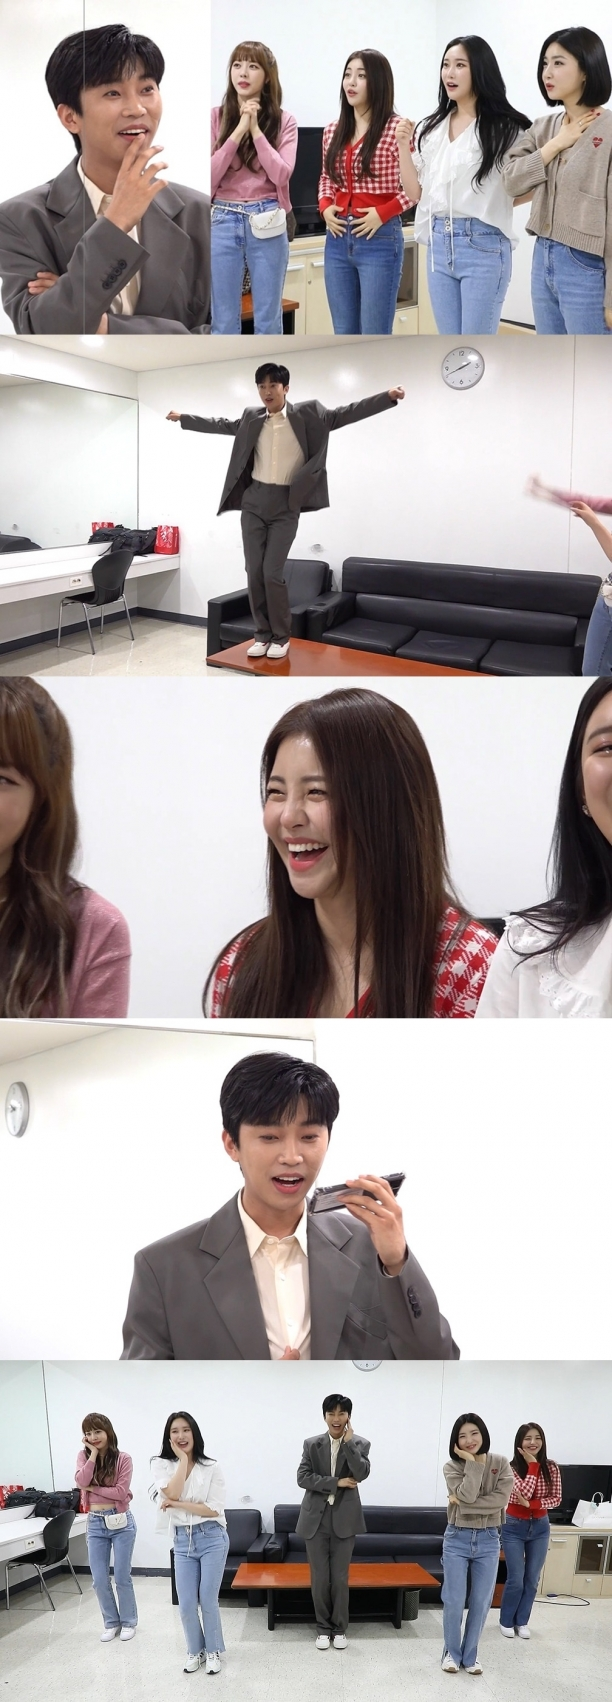 Youngwoong Lim X Brave Girls surprise meeting...  Eccentric Dance Reaction Explosion